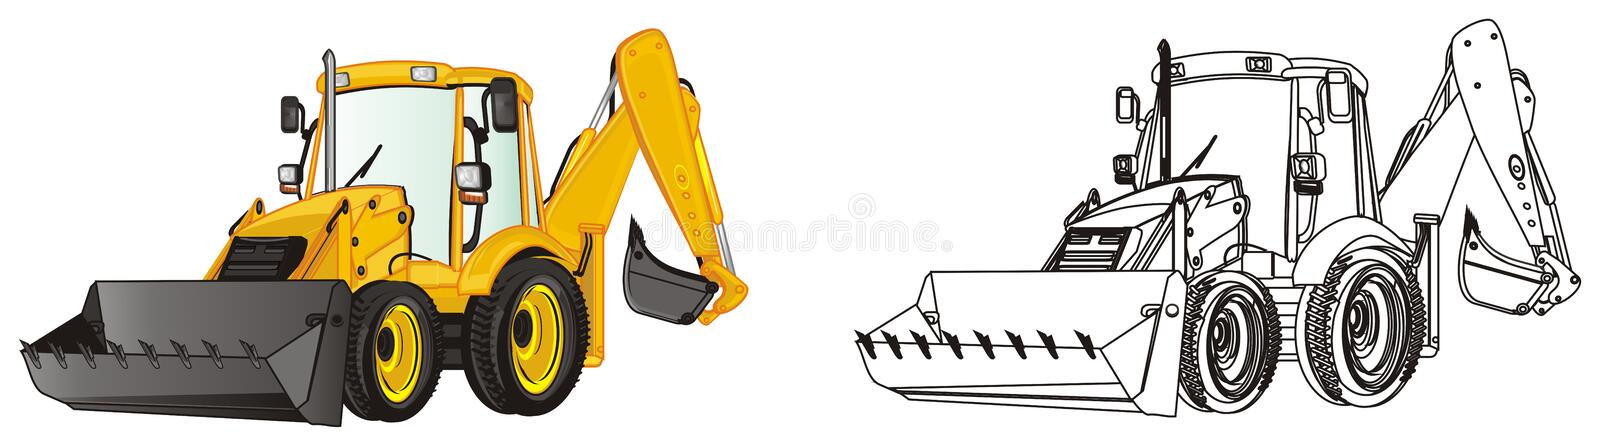 Pair of excavators. Yellow and not colored excavators royalty free illustration